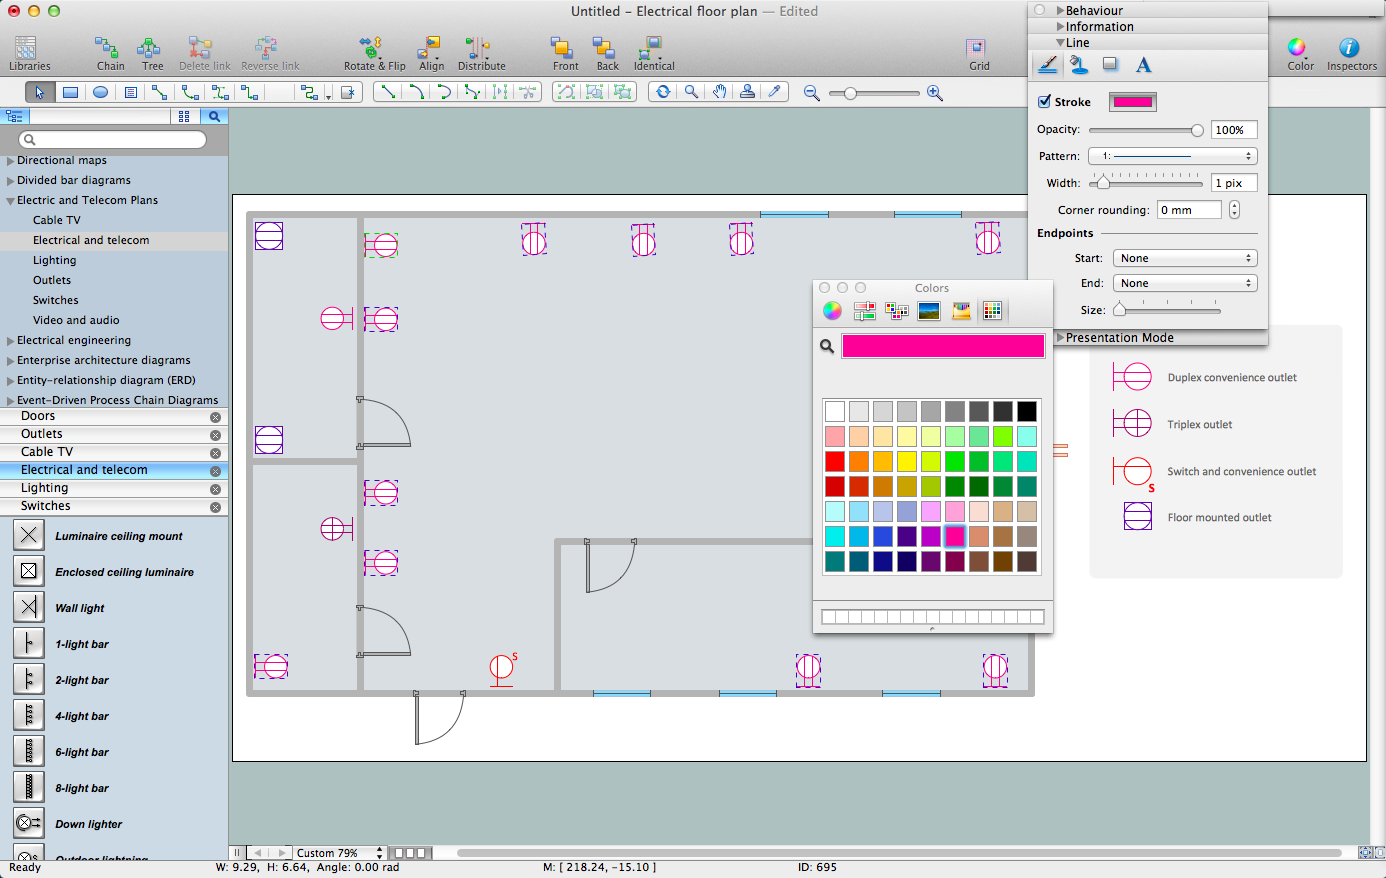 Software For Wiring Diagram from www.conceptdraw.com